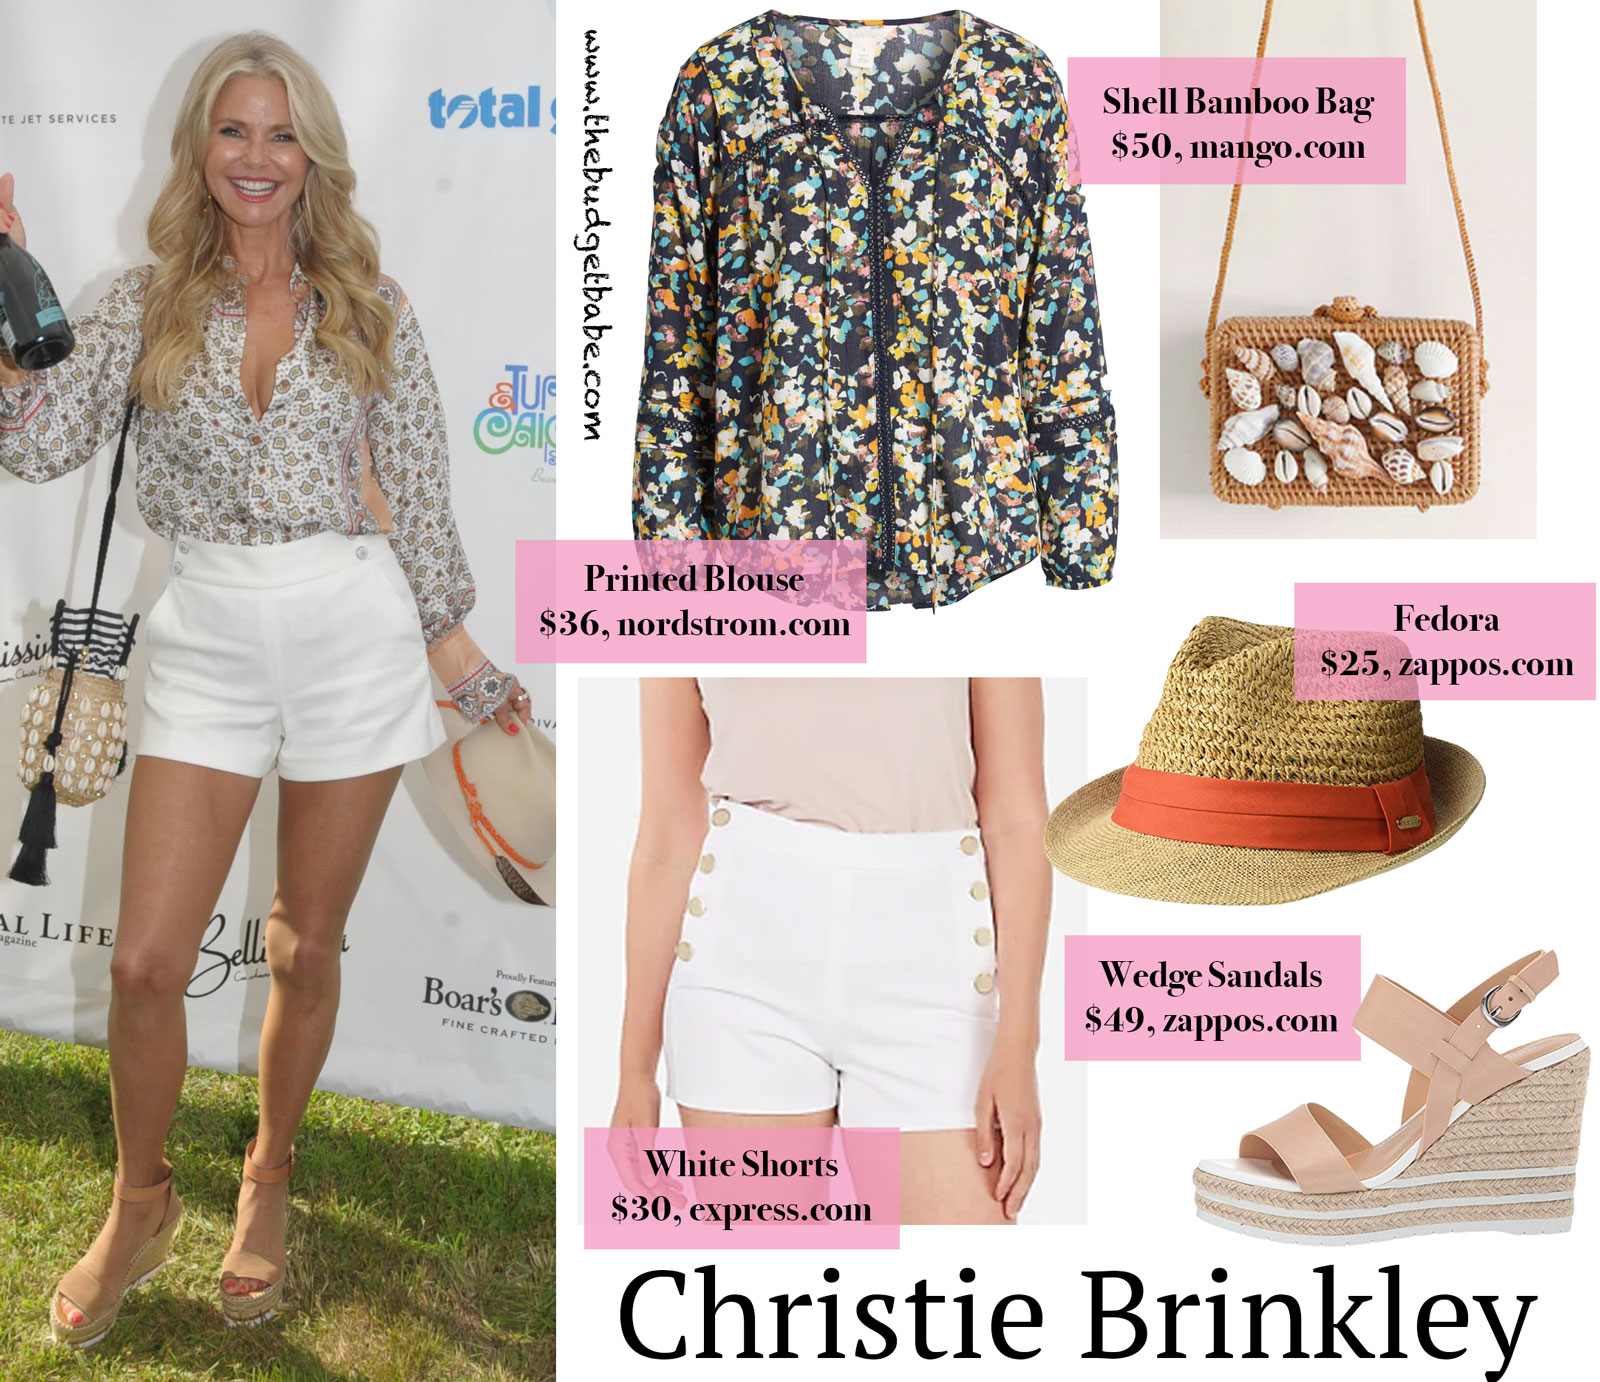 Christie Brinkley's Printed Blouse and White Shorts Look for Less